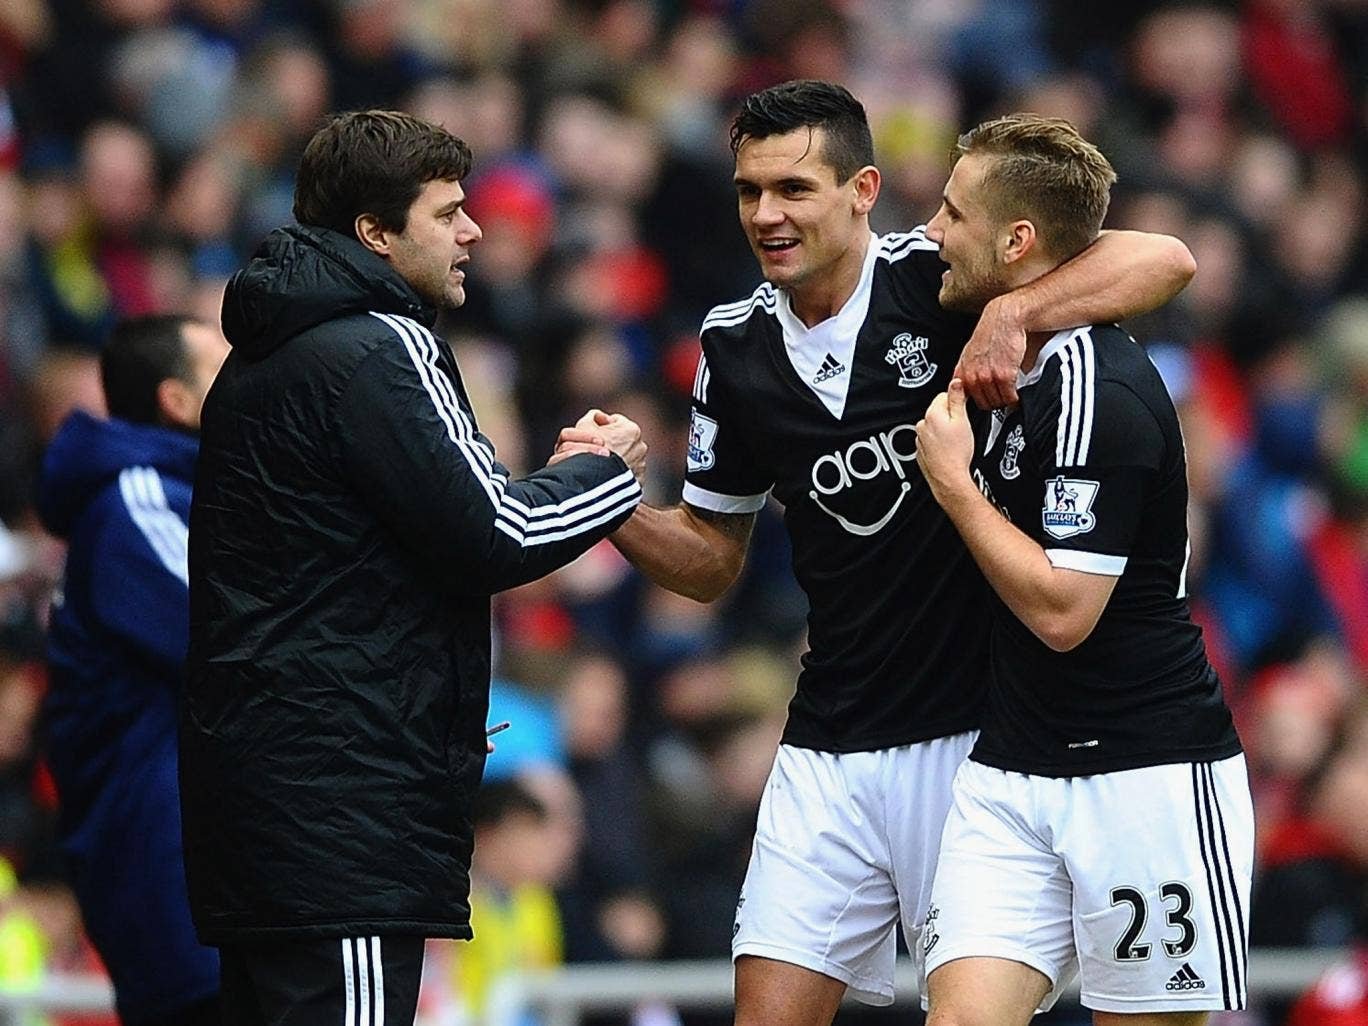 Mauricio Pochettino has reassured his squad that he will be staying following the 2-2 draw with Sunderland